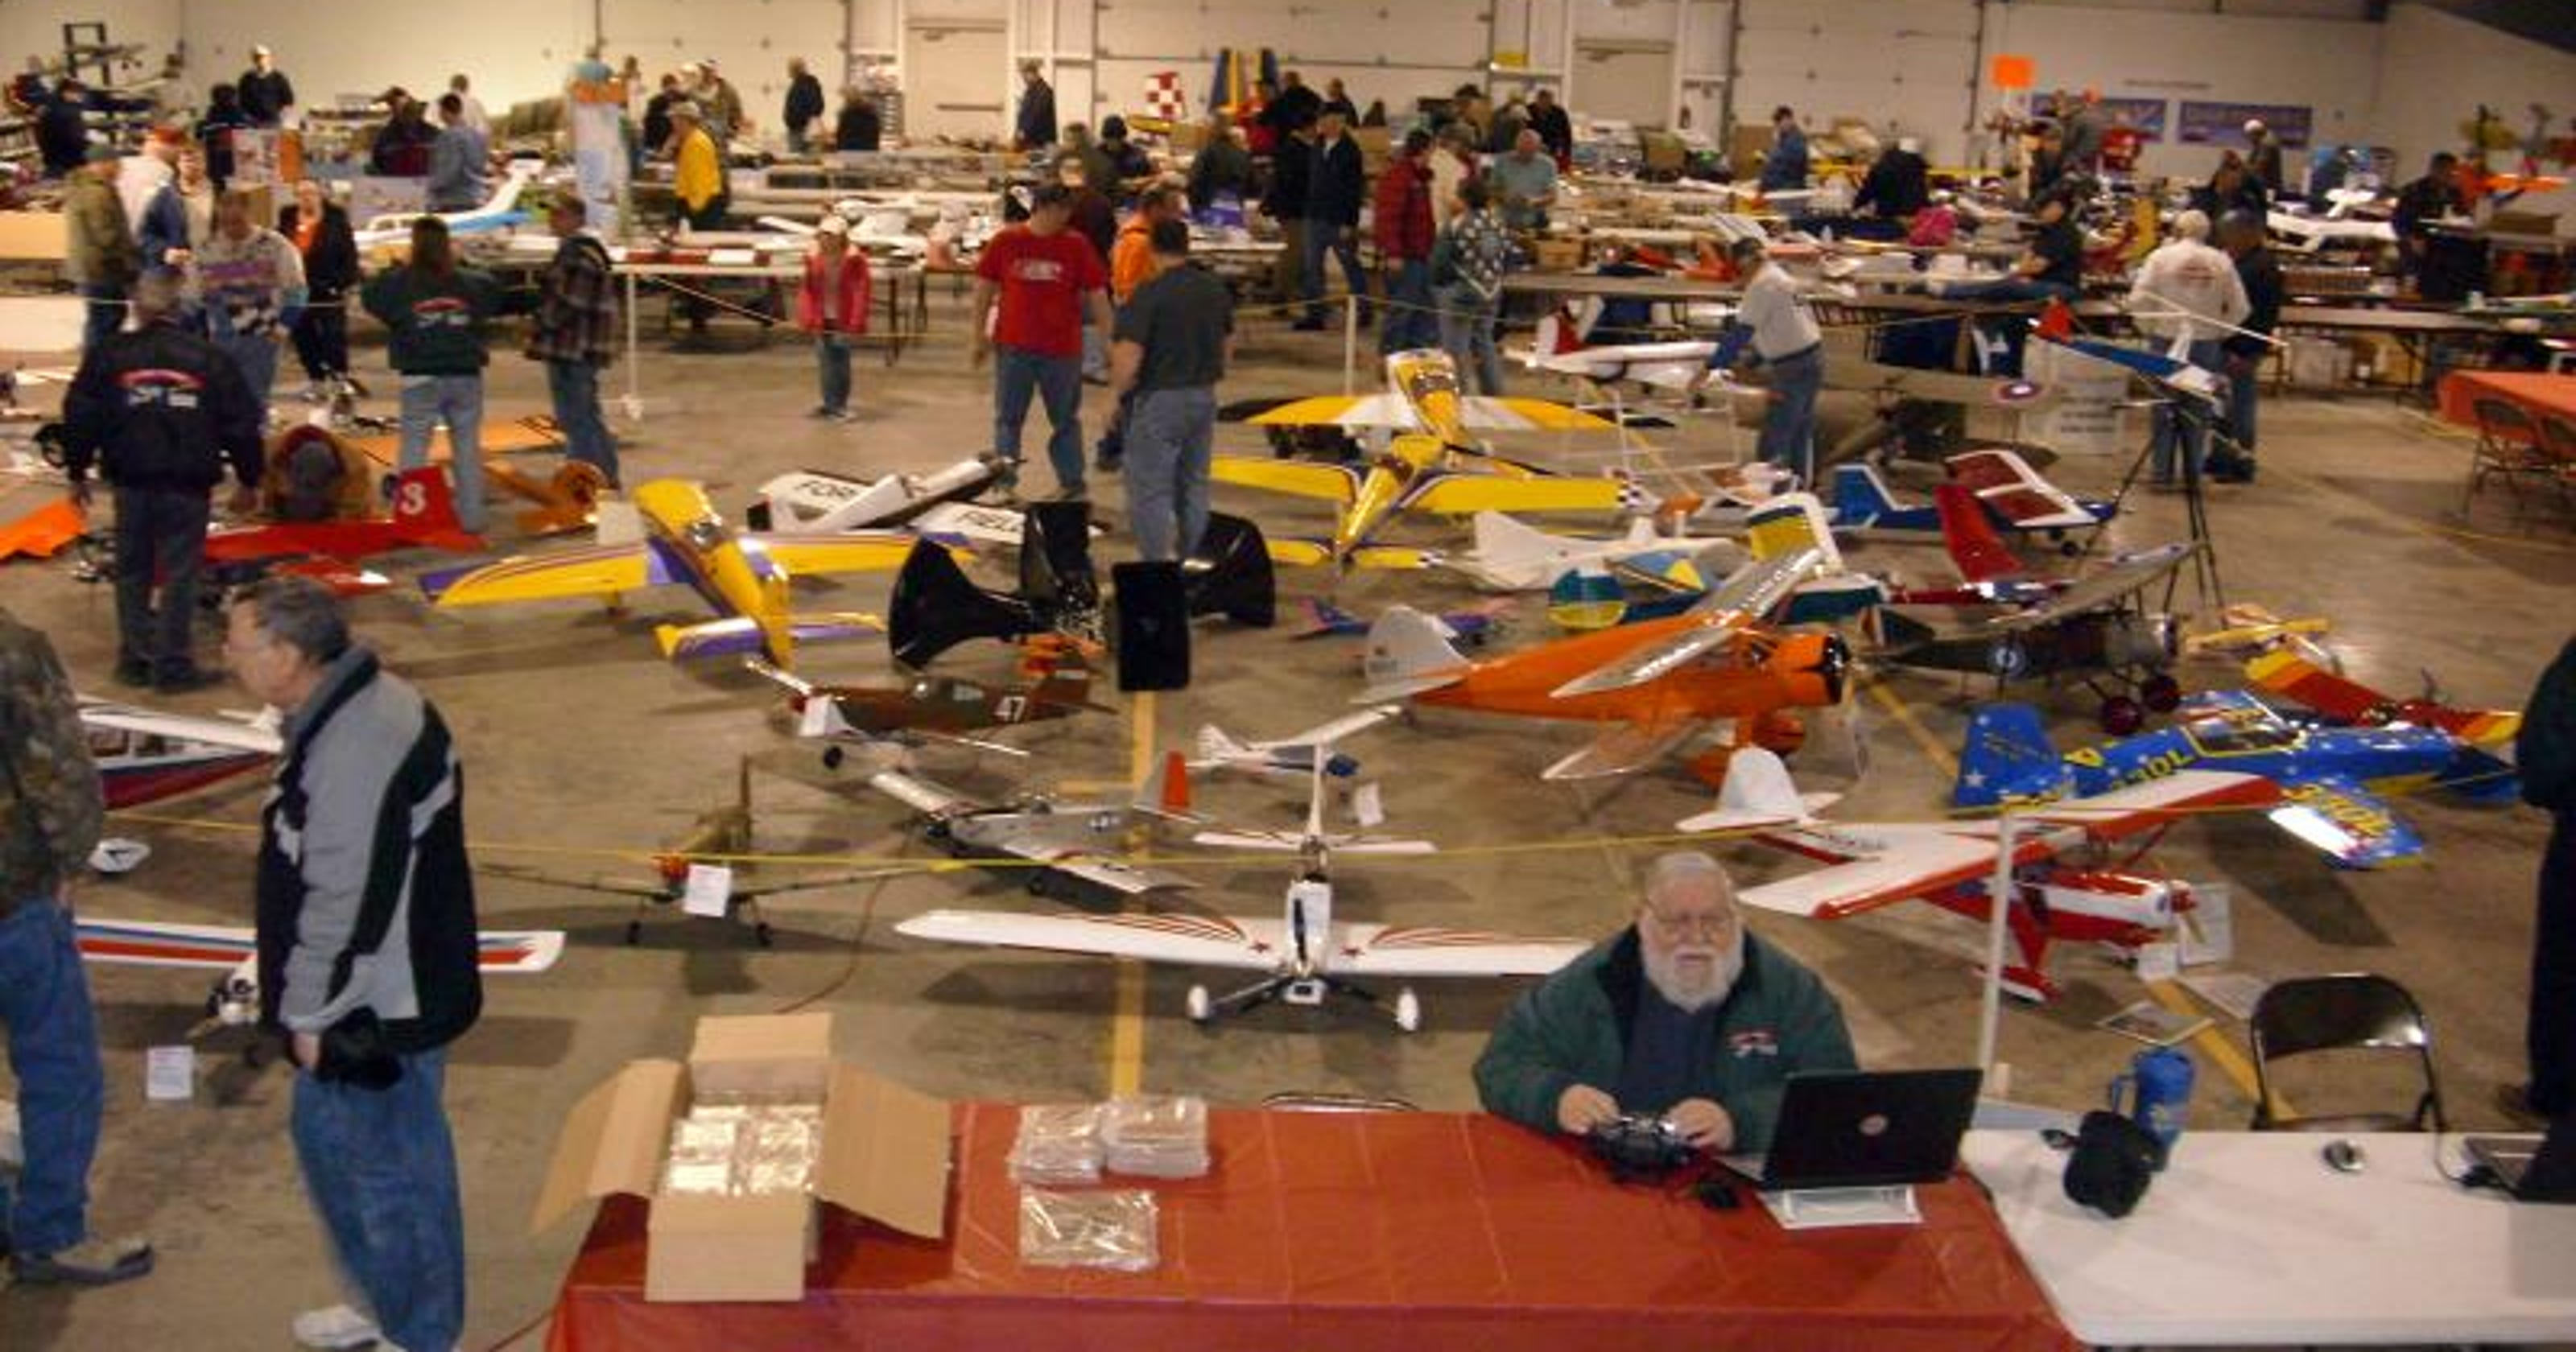 Flying FORKS model and swap event set for Saturday